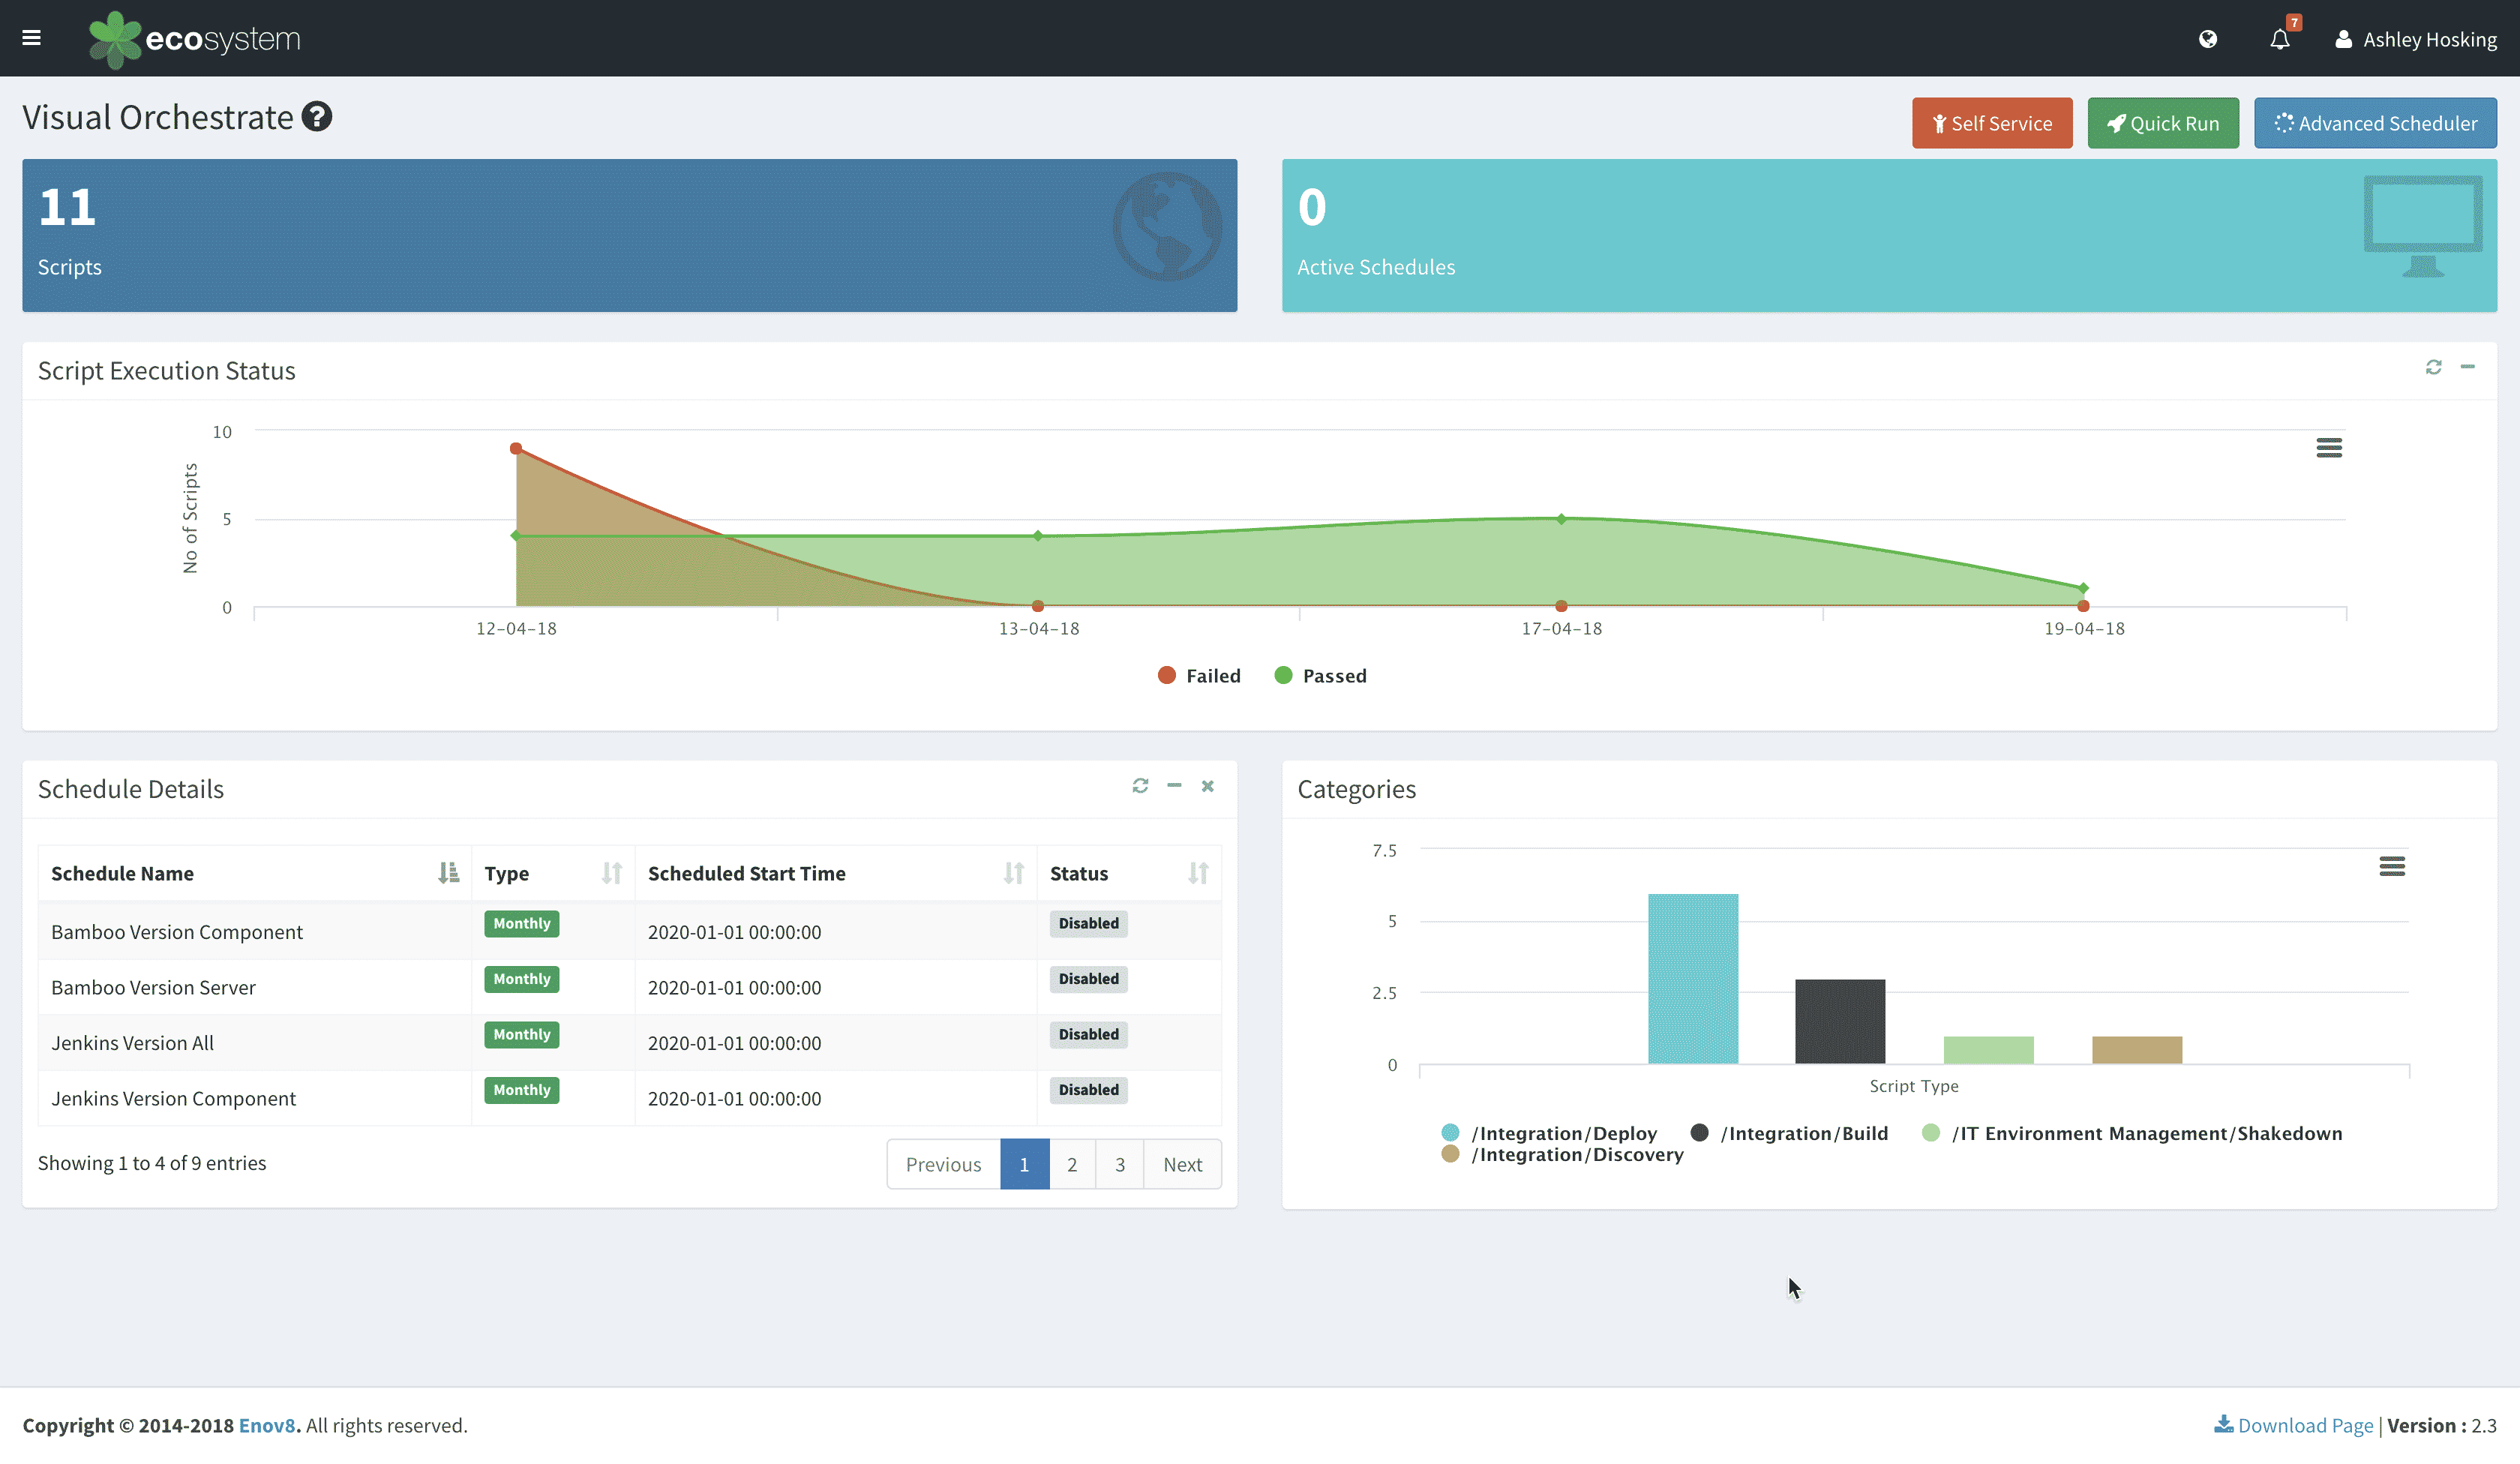 Enov8's Ecosystem System DevOps Dashboard Screenshot